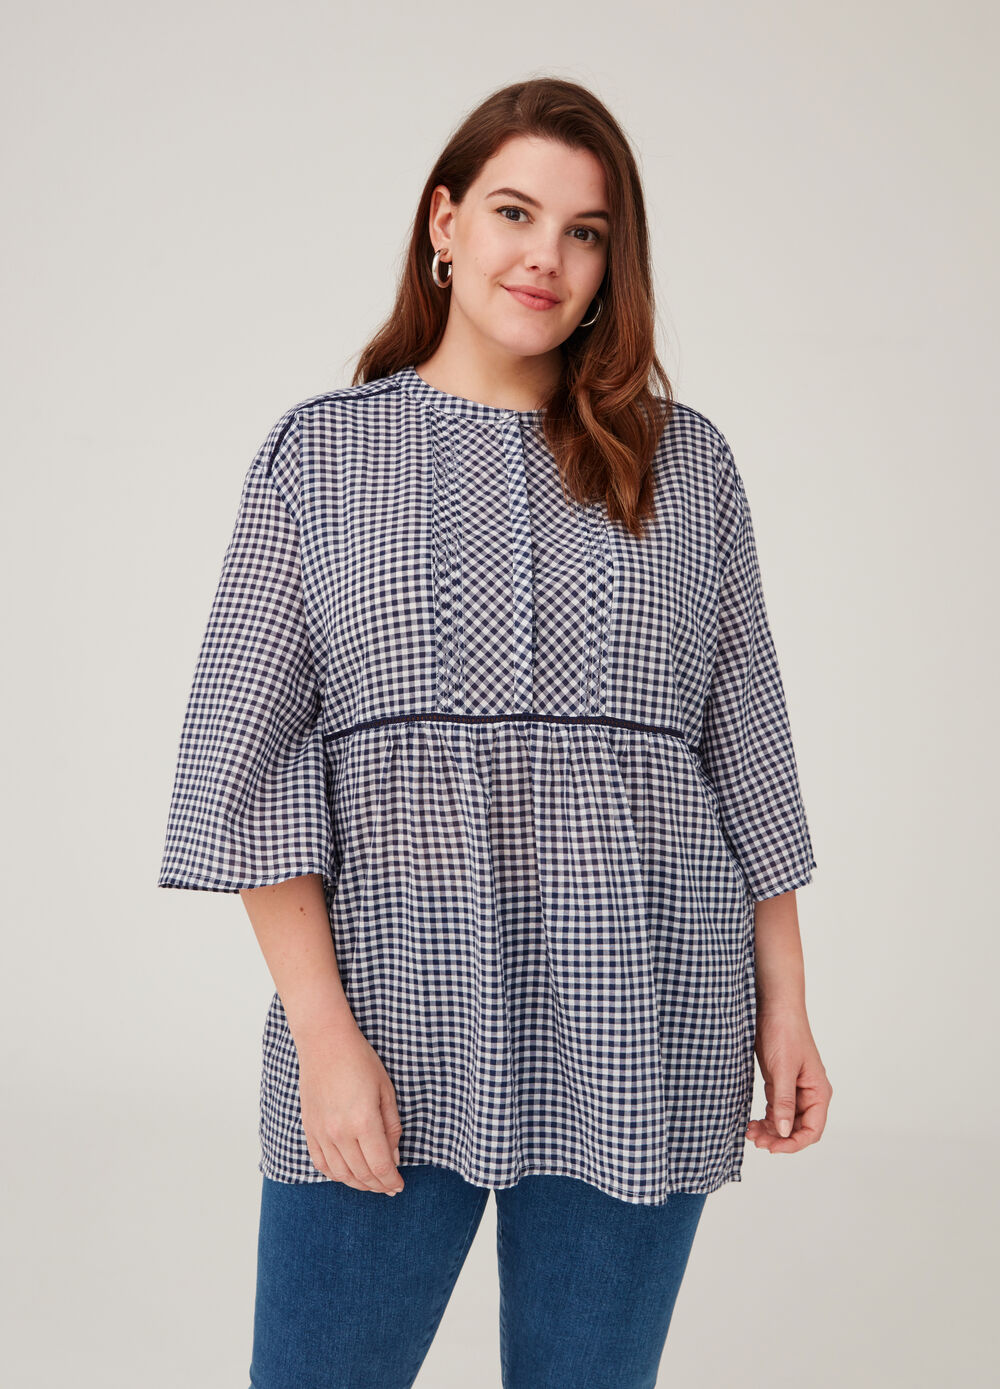 Curvy blouse with micro check pattern